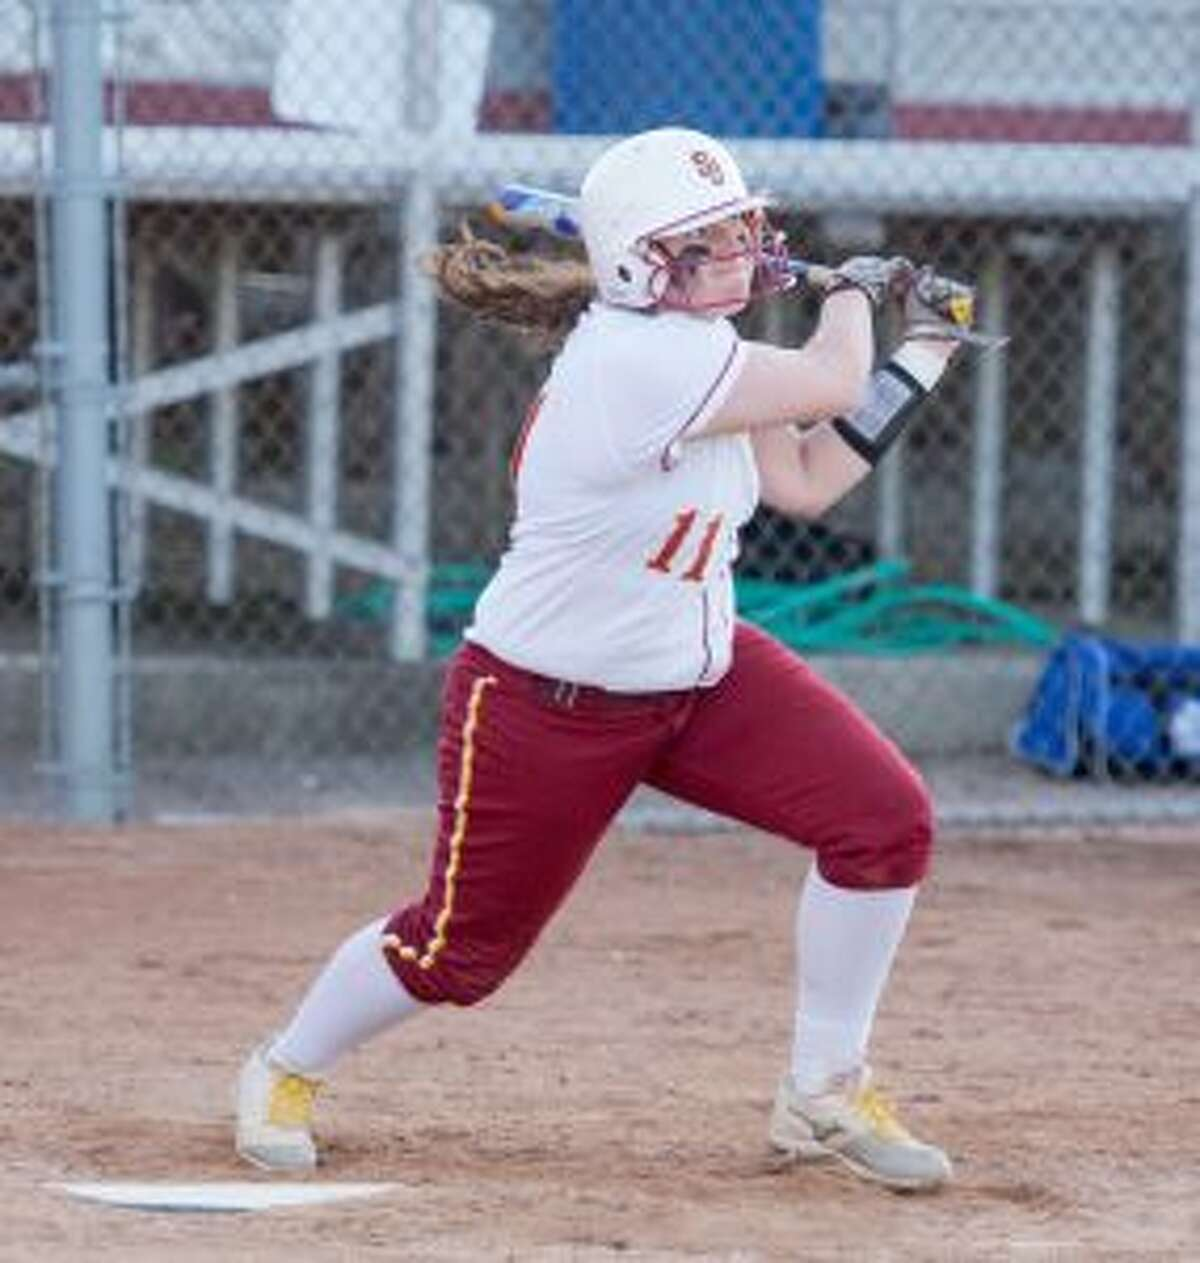 Jovanna Hillman follows through on her swing when the senior homered in the third inning to tie the game. - David G. Whitham photos